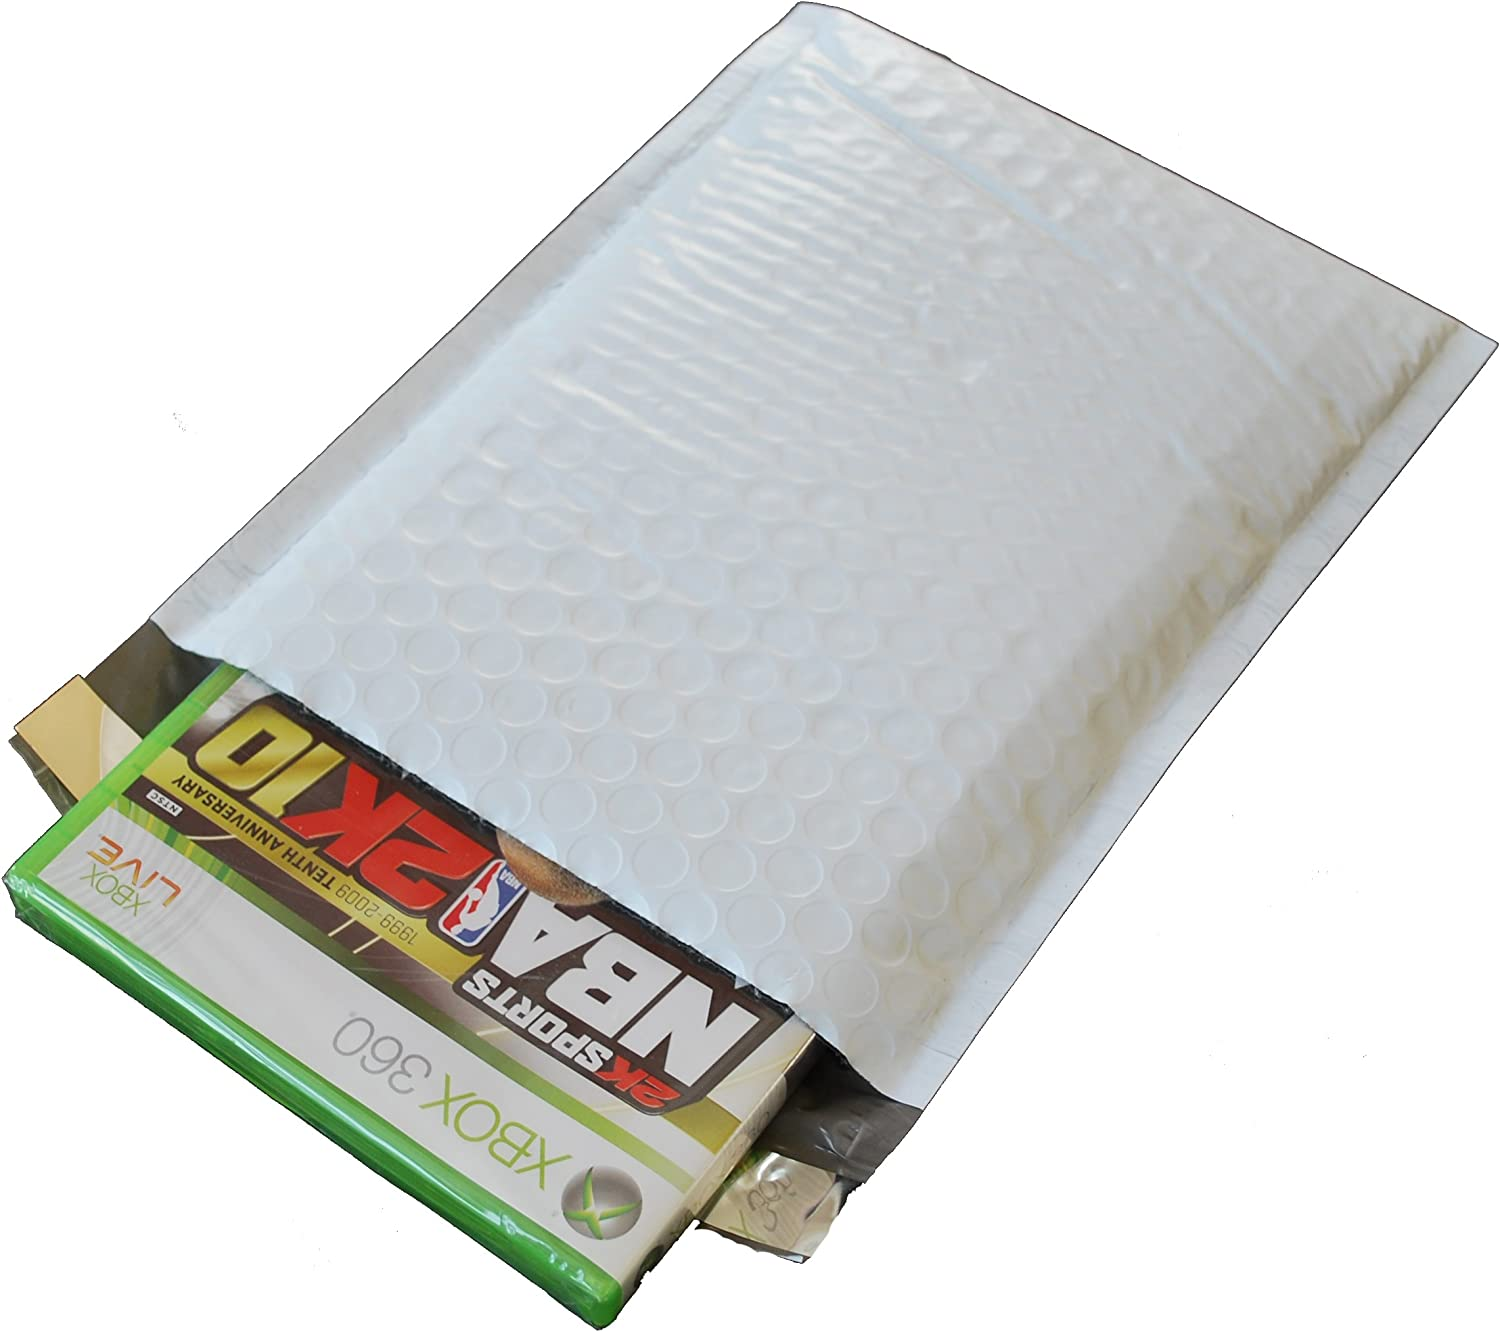 Tampa Mall New product type 250#0 VALUEMAILERS 6x10 POLY PADDED ENVELOPES MAILERS BUBBLE